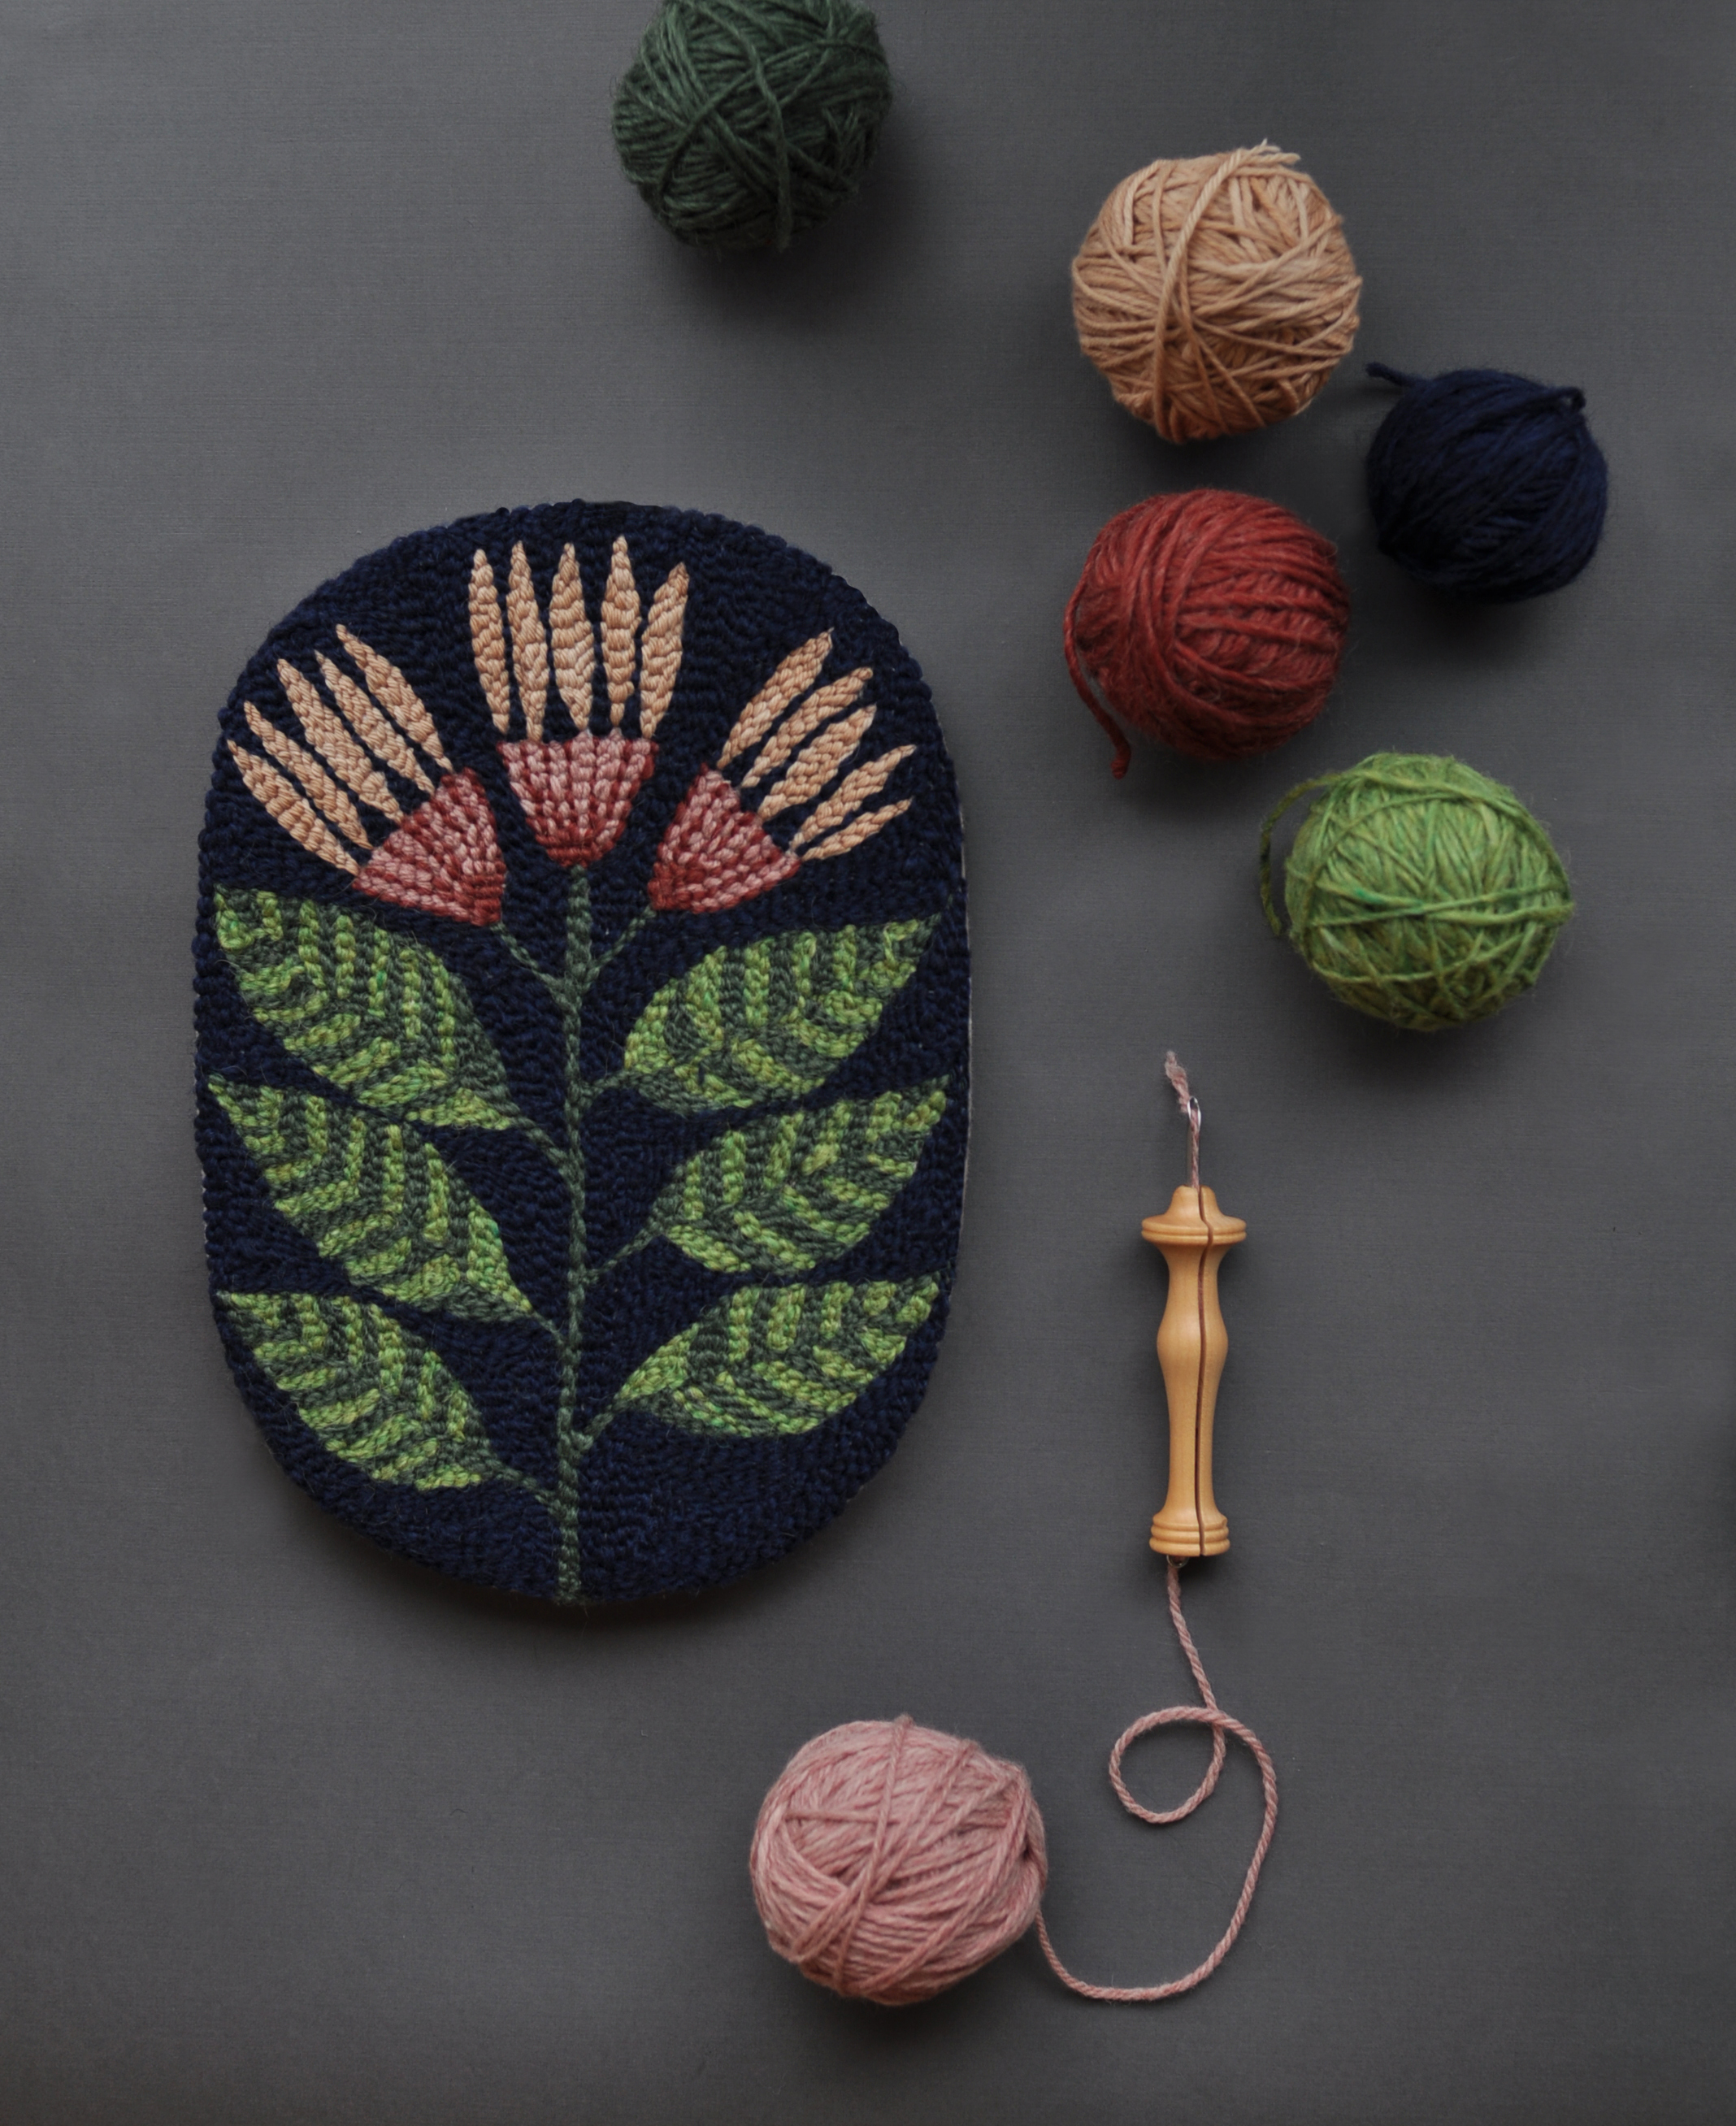 floral 2 punch needle.jpg